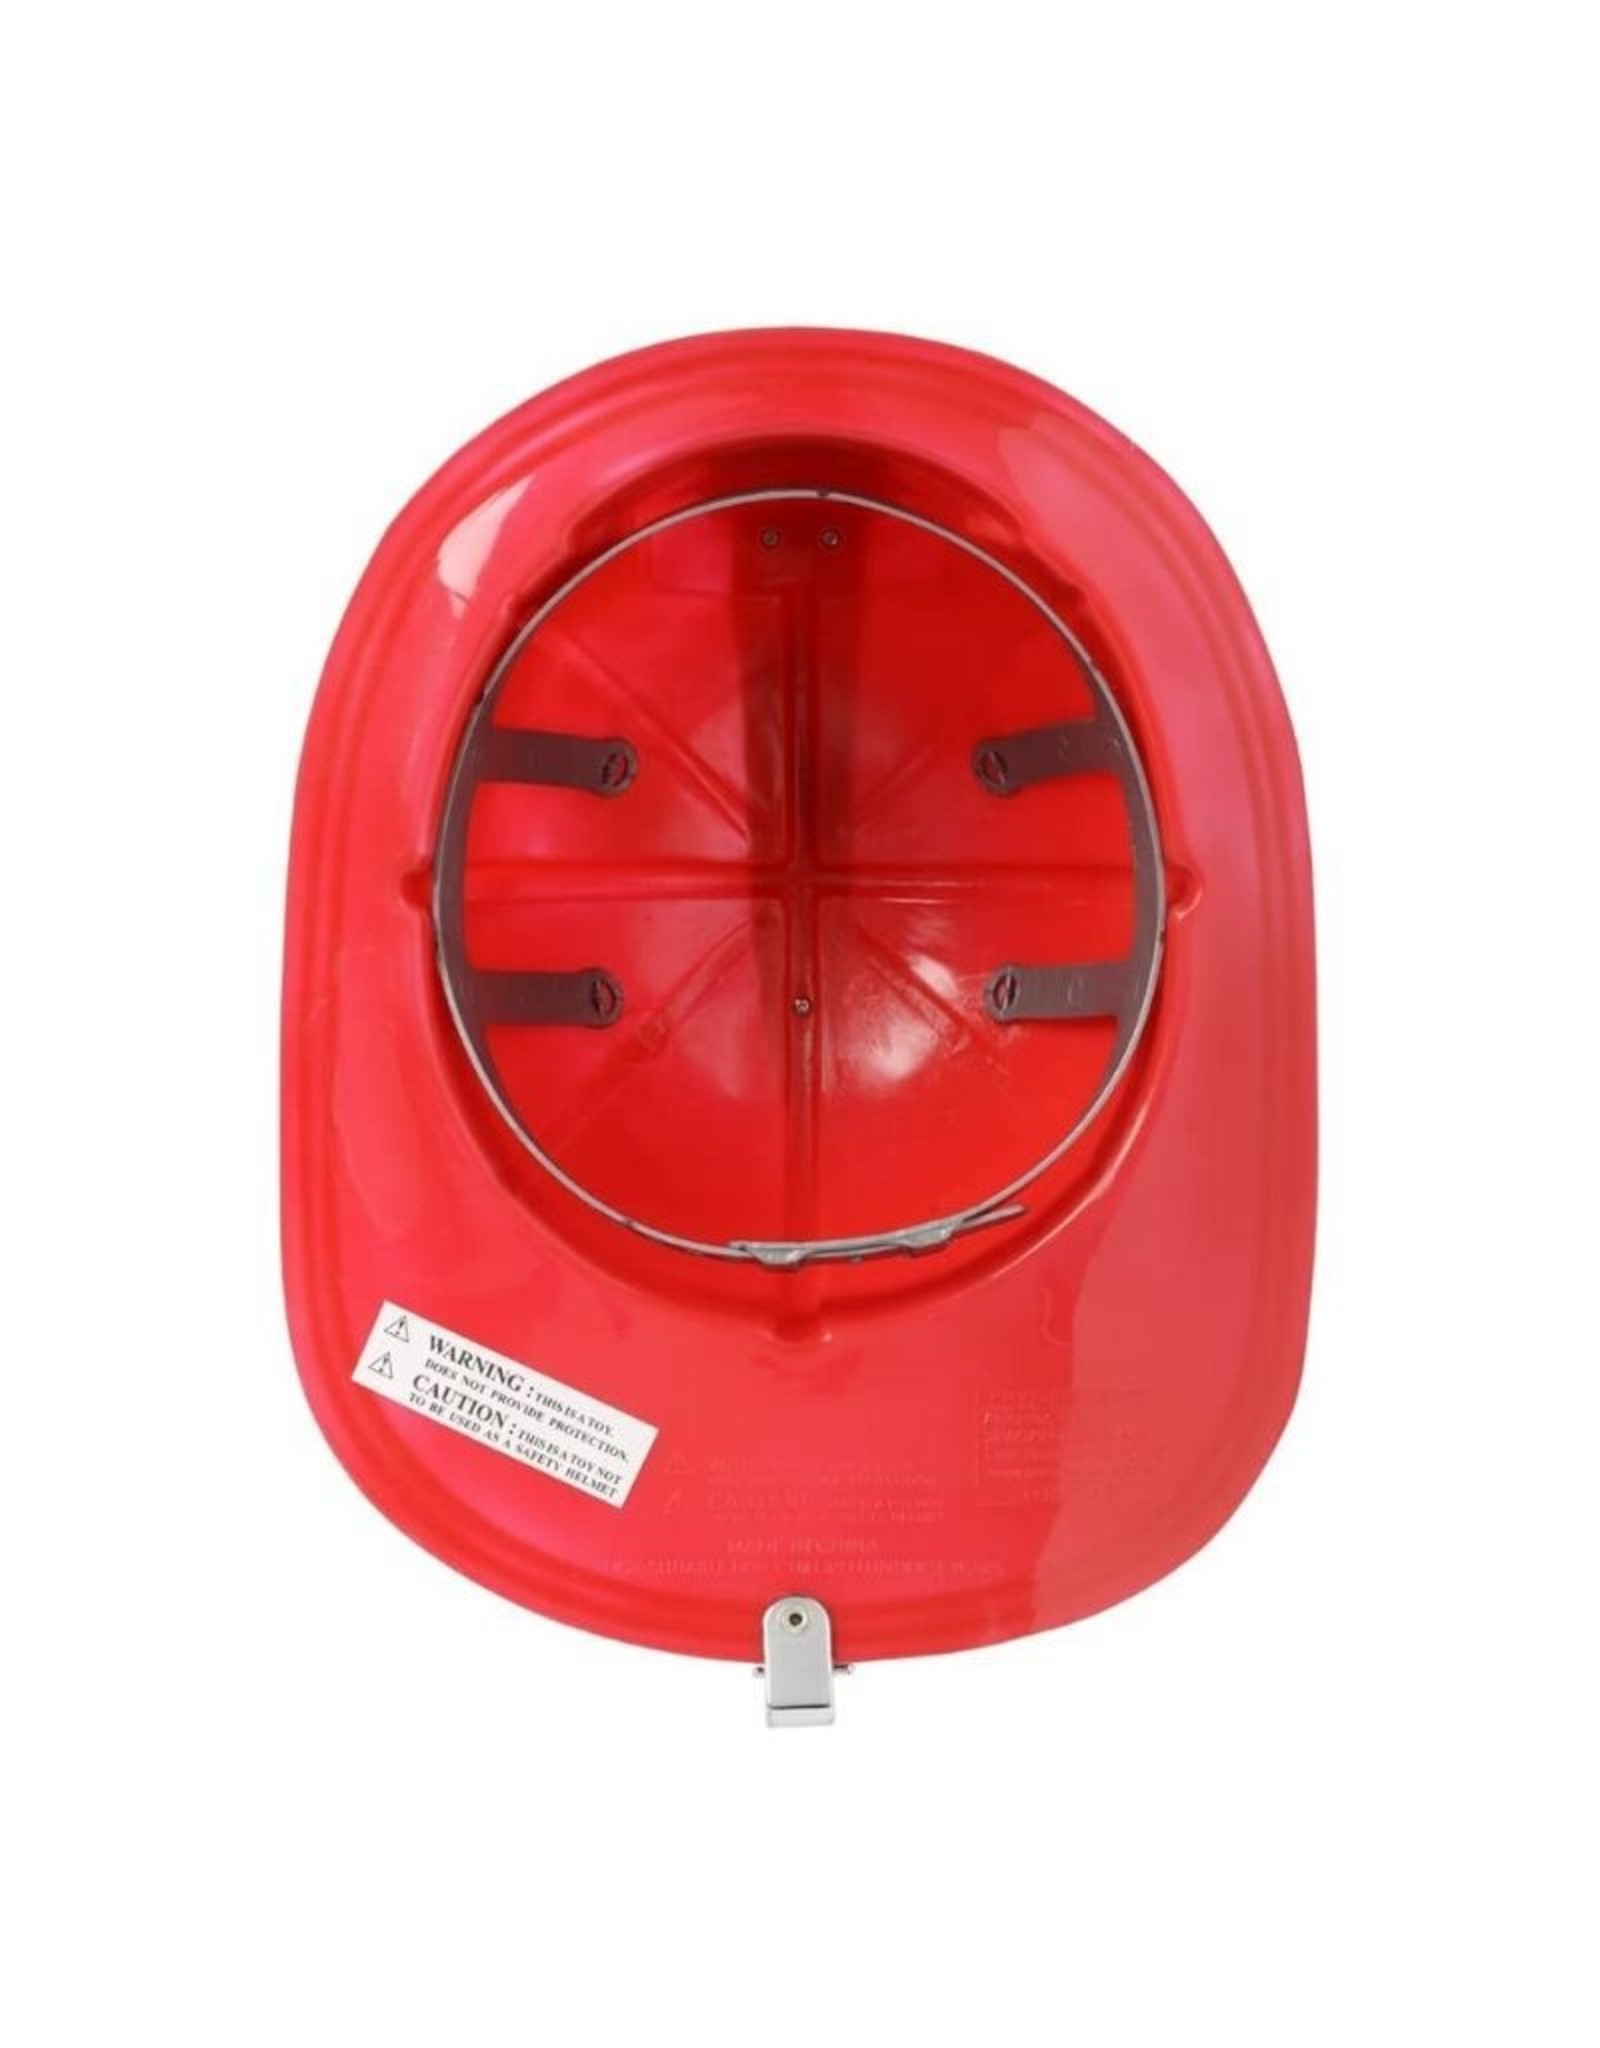 Aeromax Red Fire Fighter Helmet with Sound